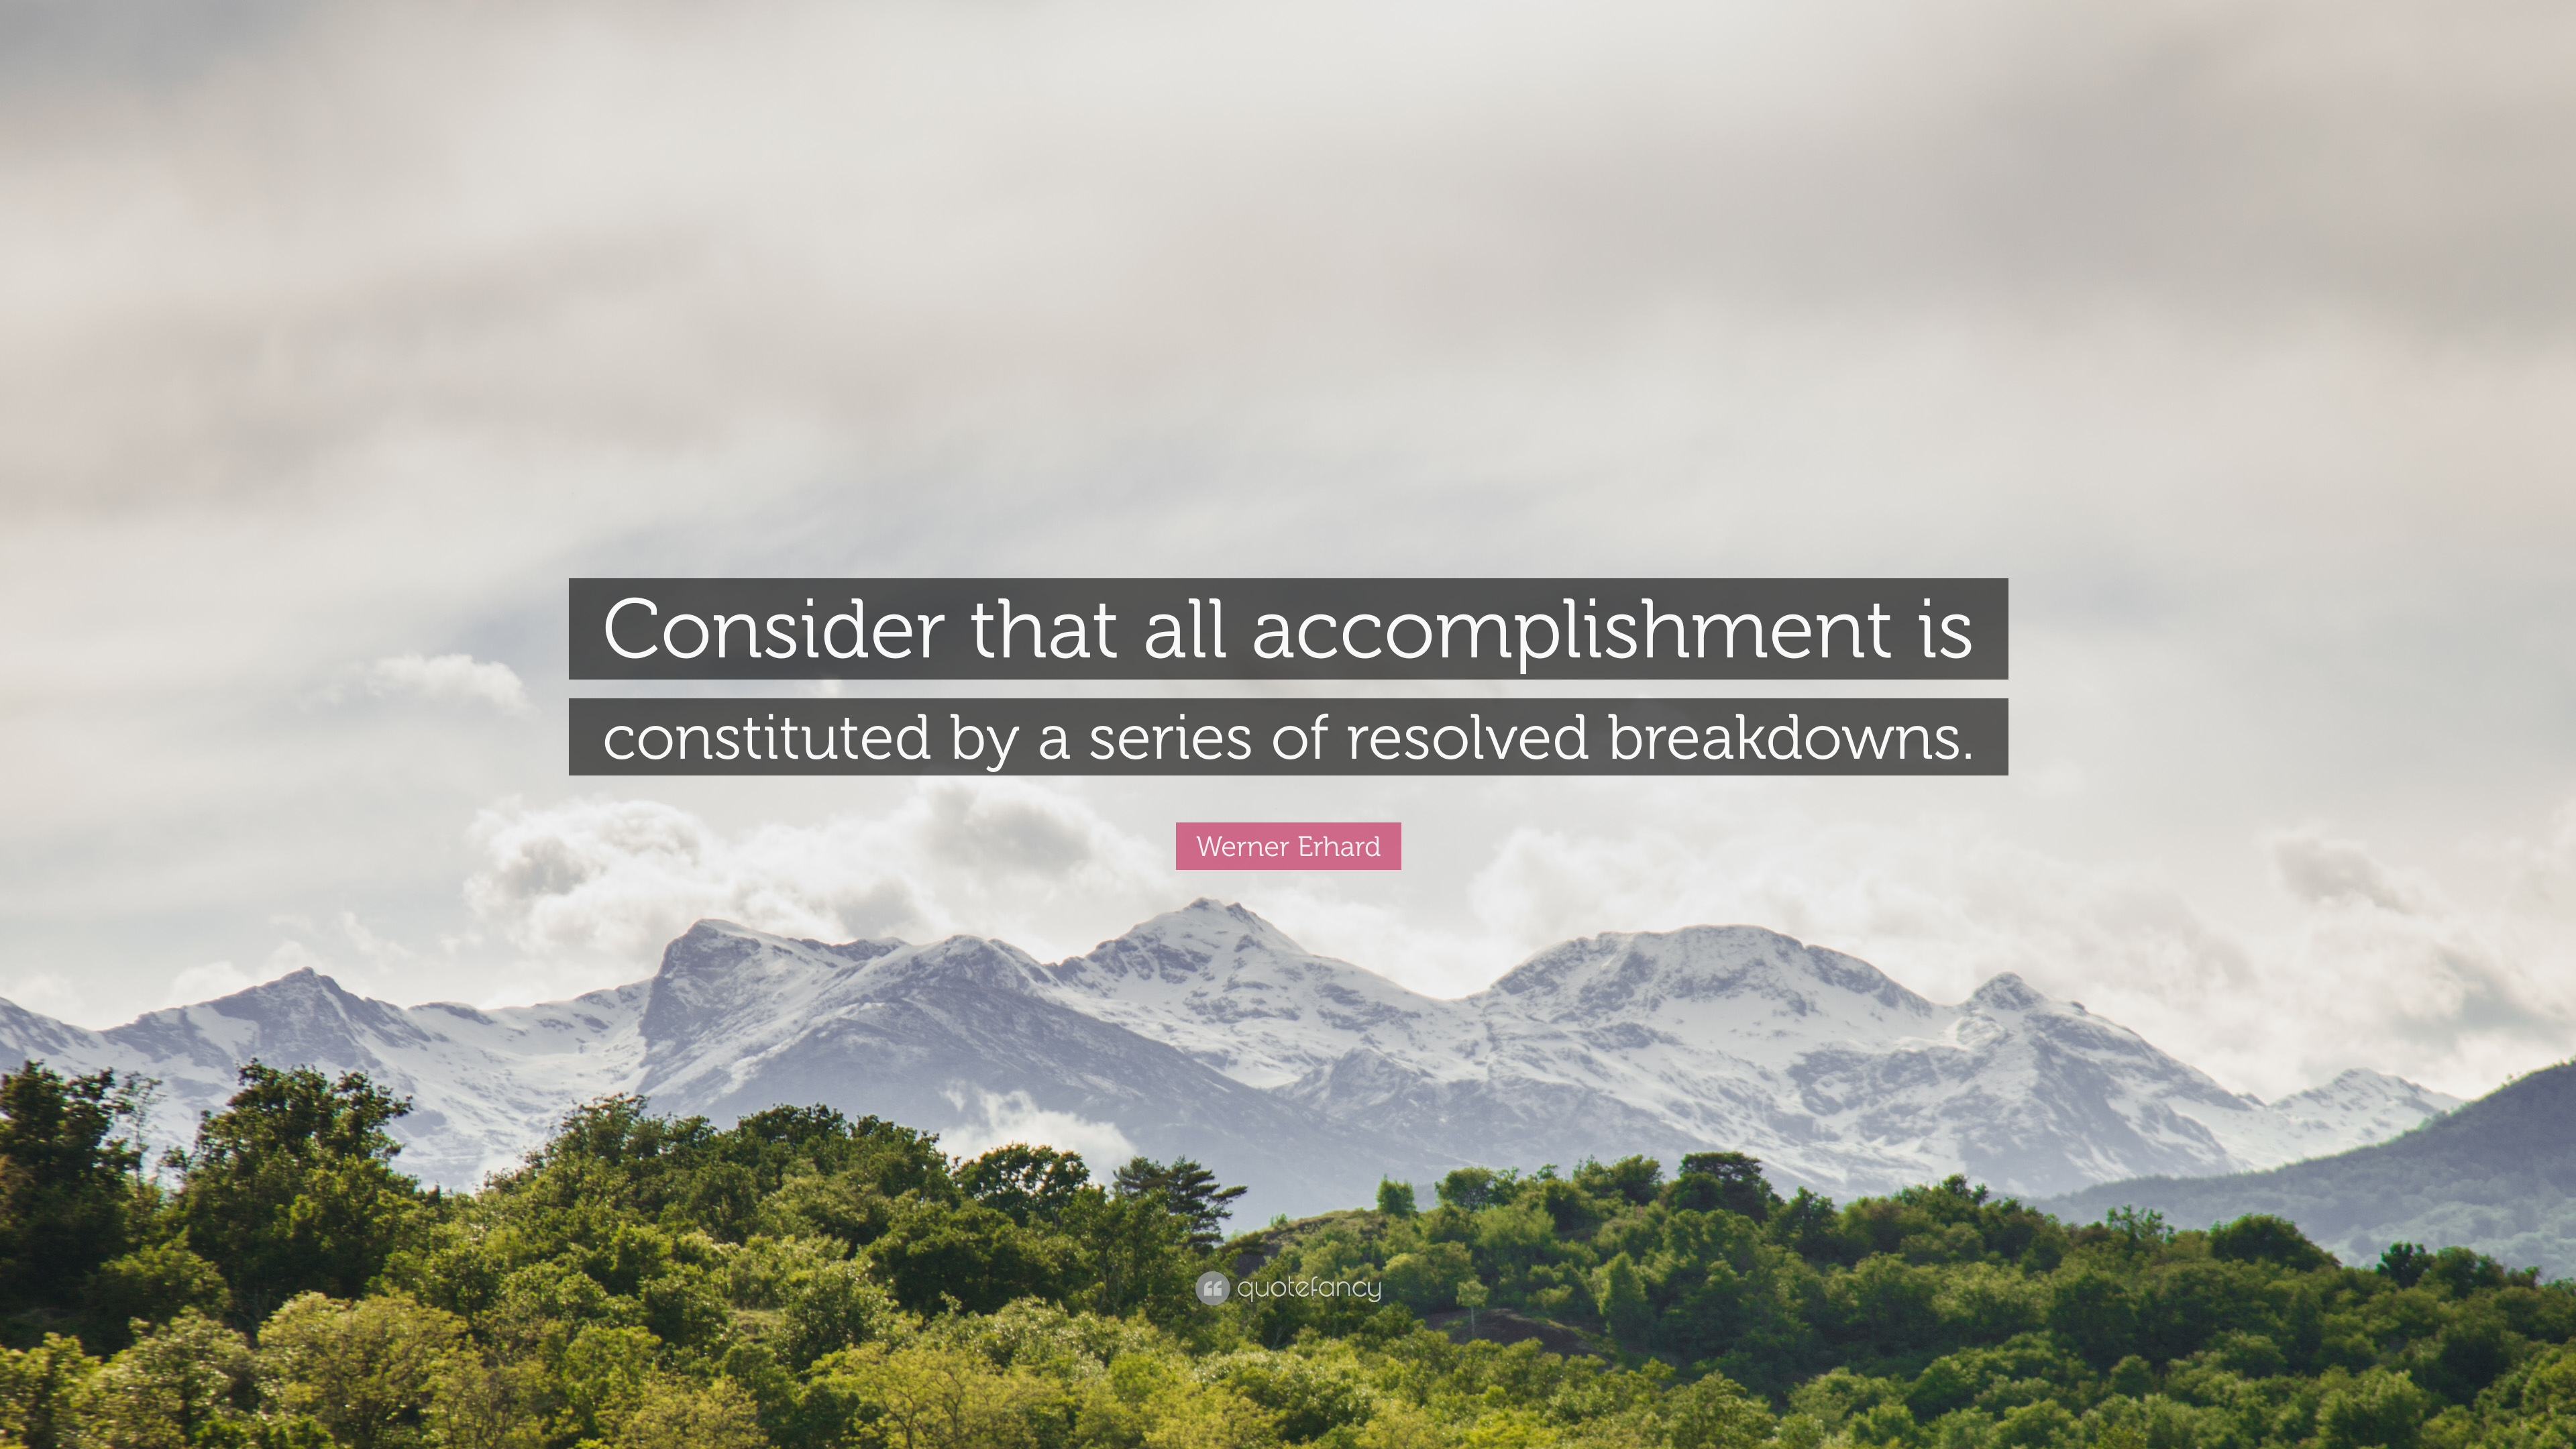 werner erhard quote consider that all accomplishment is werner erhard quote consider that all accomplishment is constituted by a series of resolved